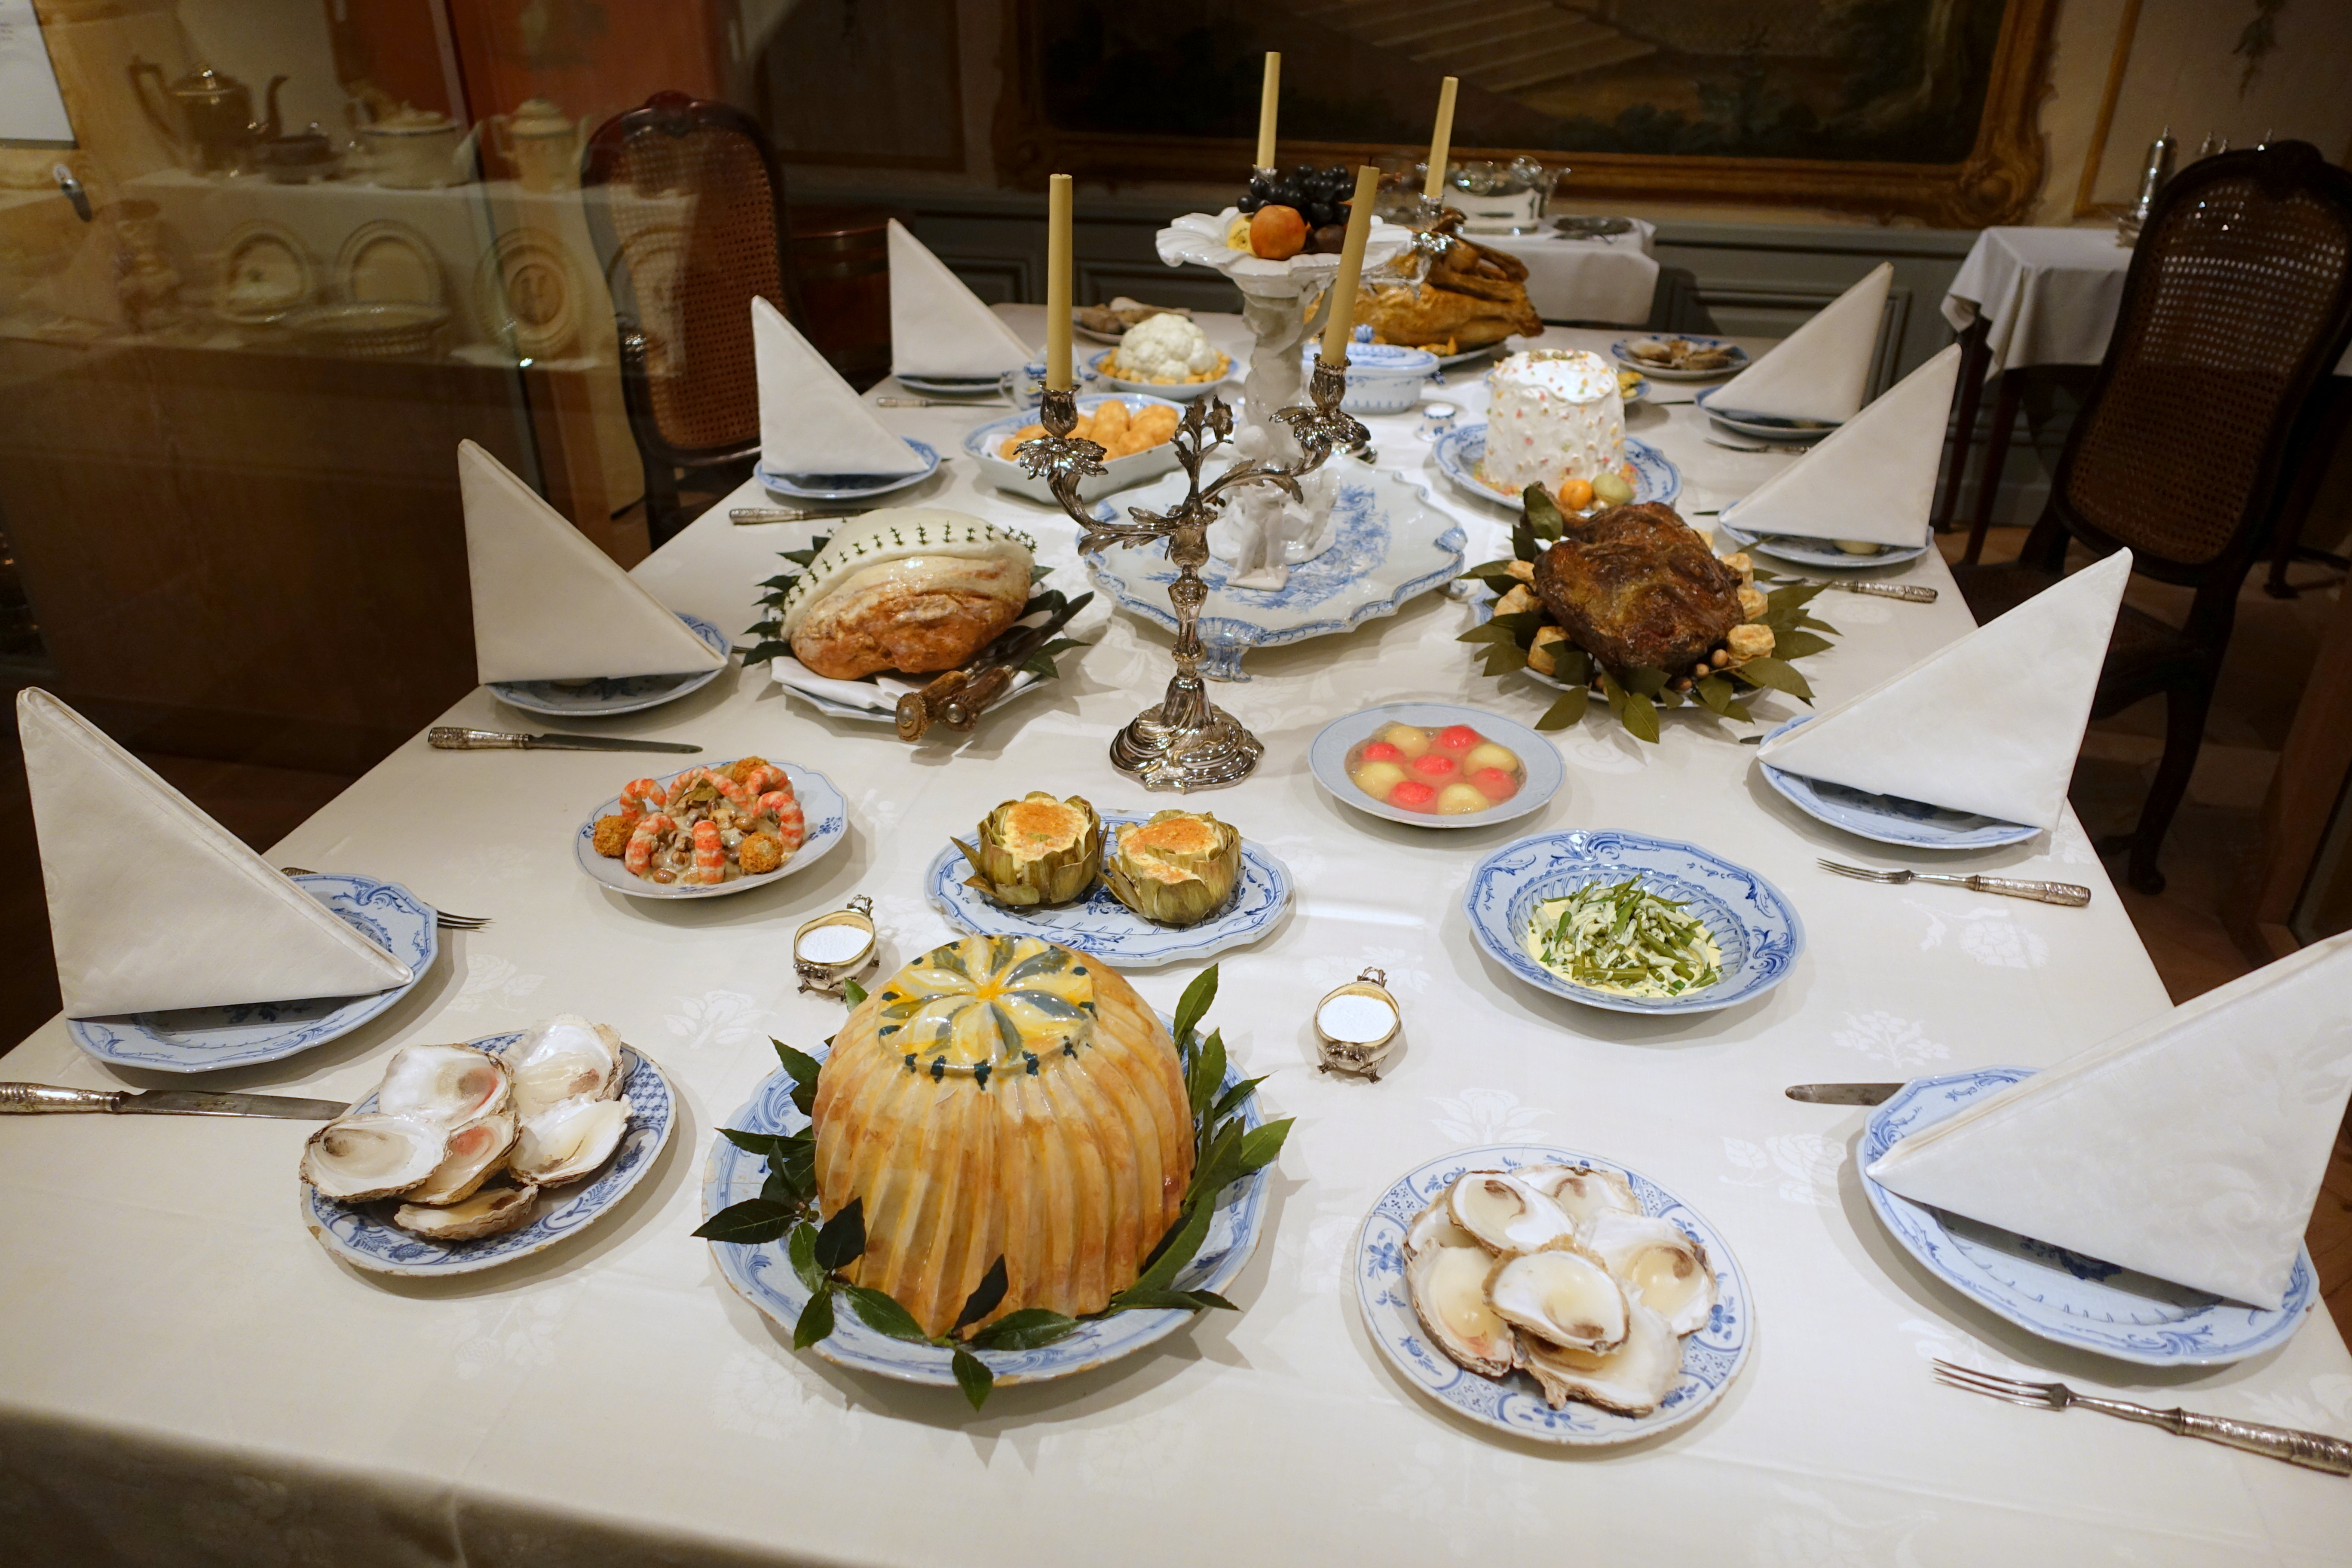 Excellent History Of Table Setting Contemporary - Best Image Engine ... Excellent History Of Table Setting Contemporary Best Image Engine & Excellent History Of Table Setting Contemporary - Best Image Engine ...